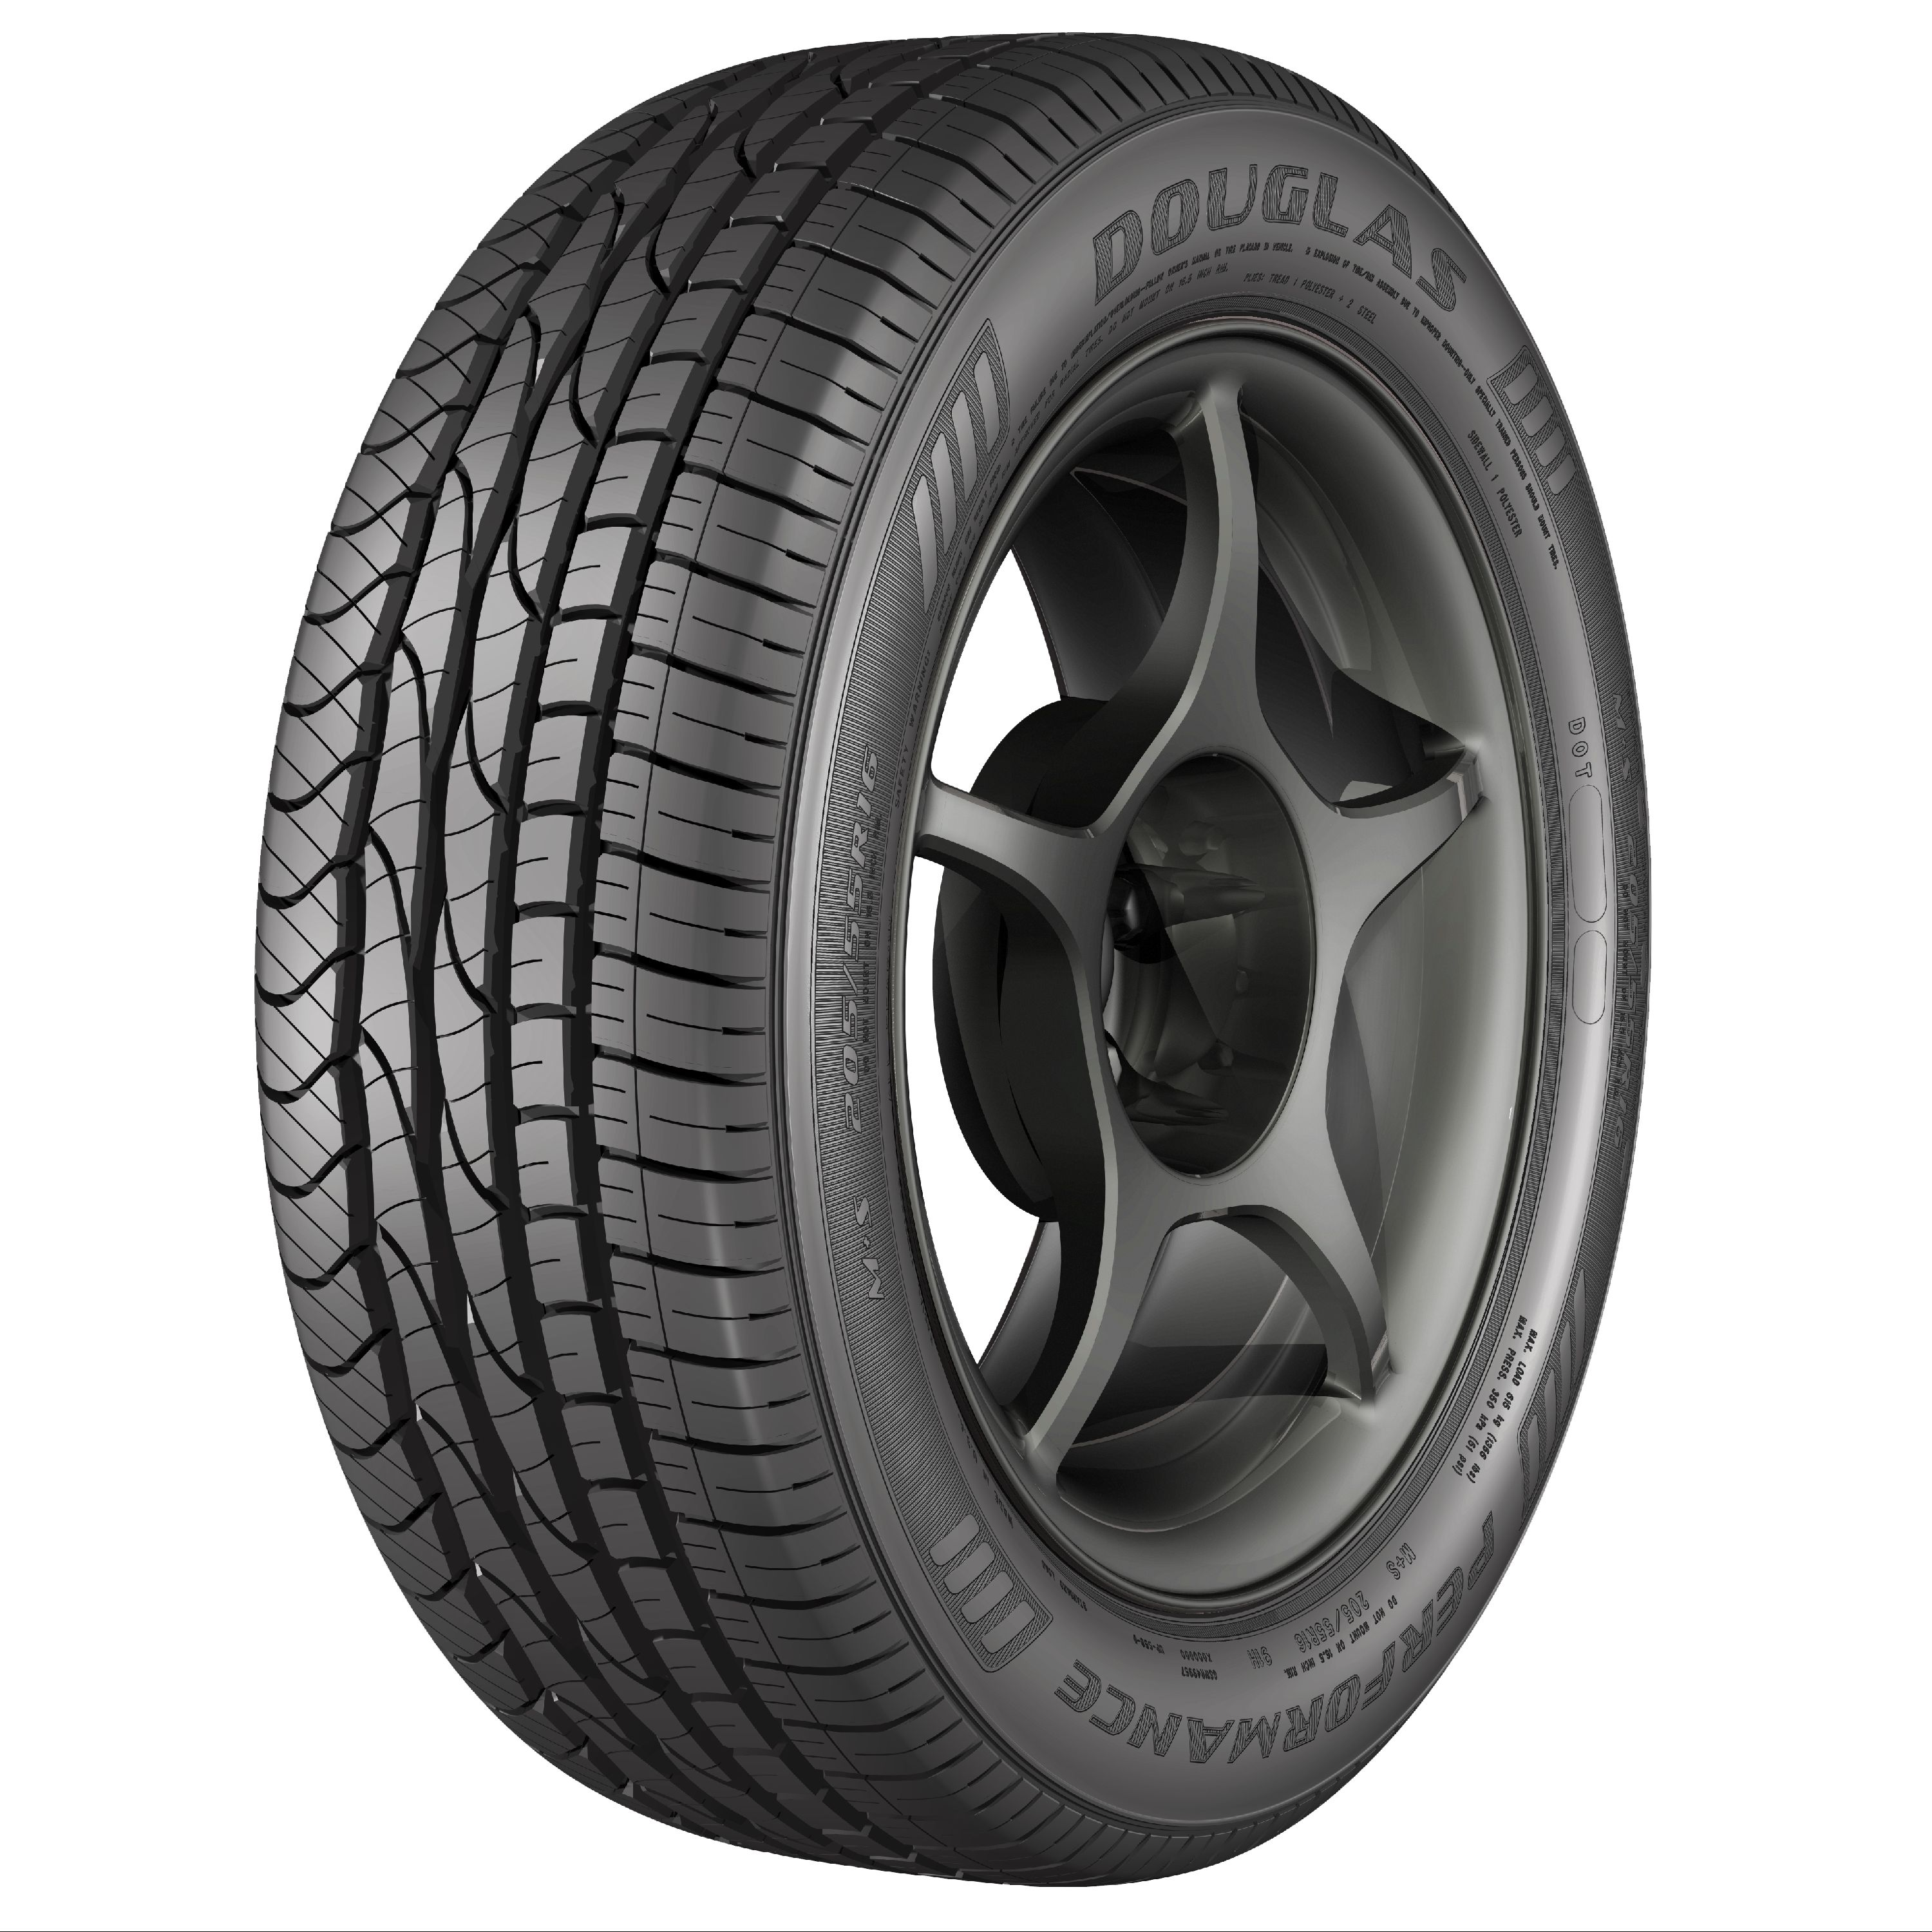 Douglas Performance Tire 215/55R17 94V SL